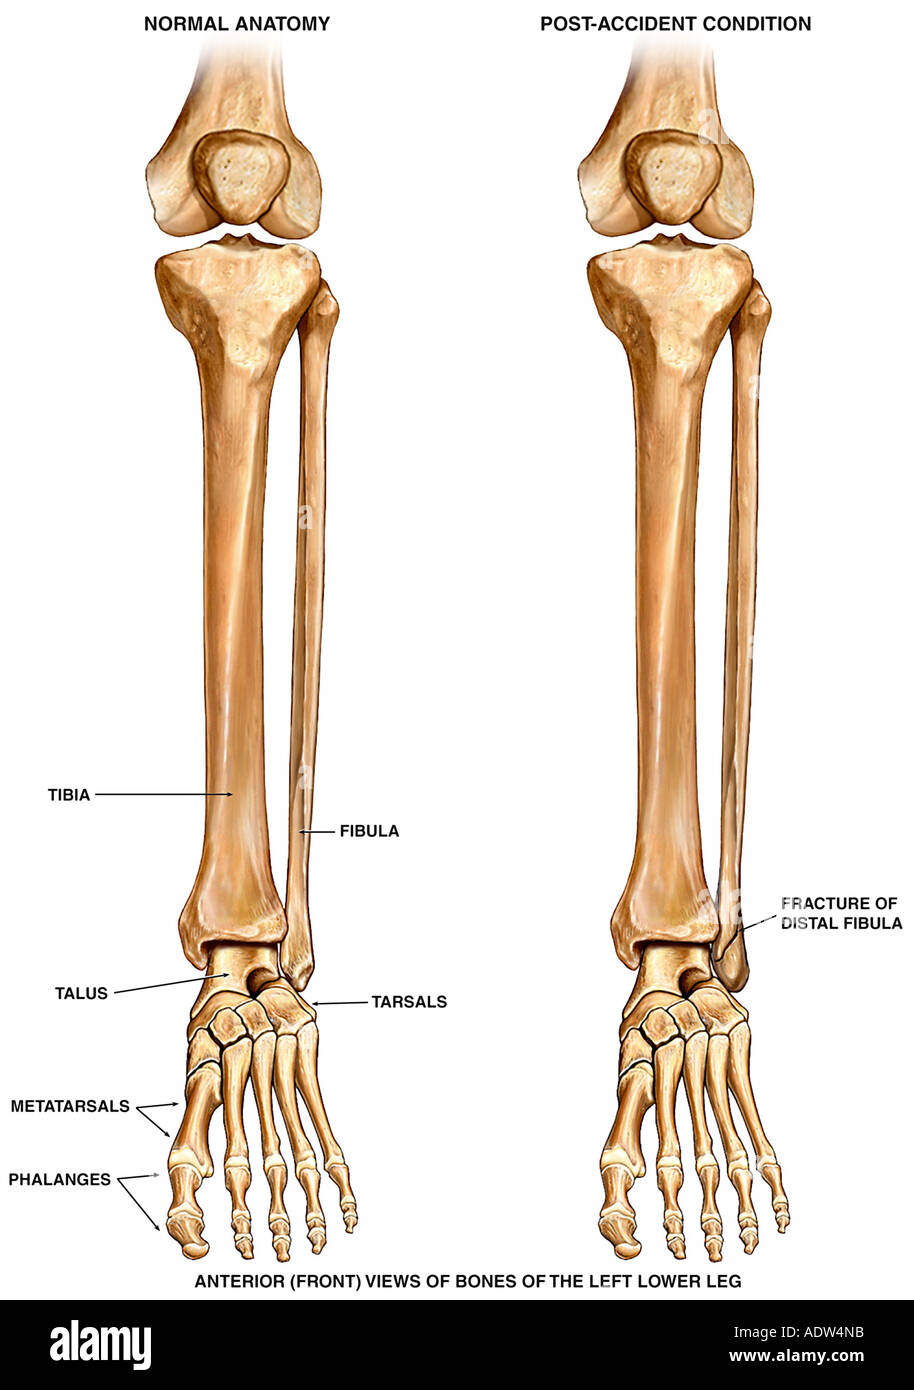 Lateral Malleolus Fracture Stock Photos & Lateral Malleolus Fracture ...